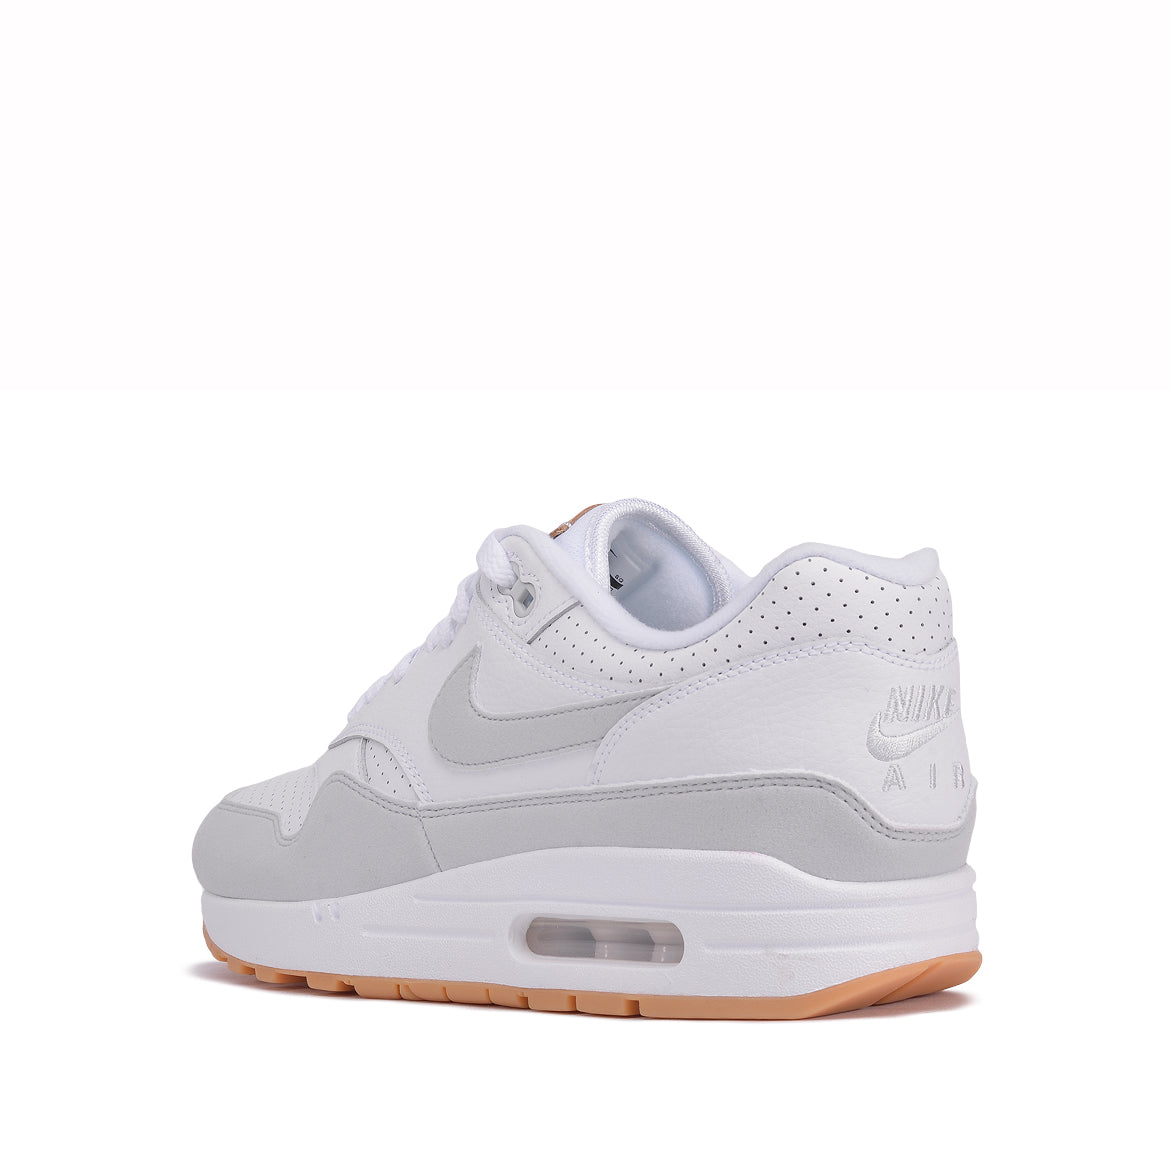 good out x separation shoes good service AIR MAX 1 - WHITE / PURE PLATINUM / GUM